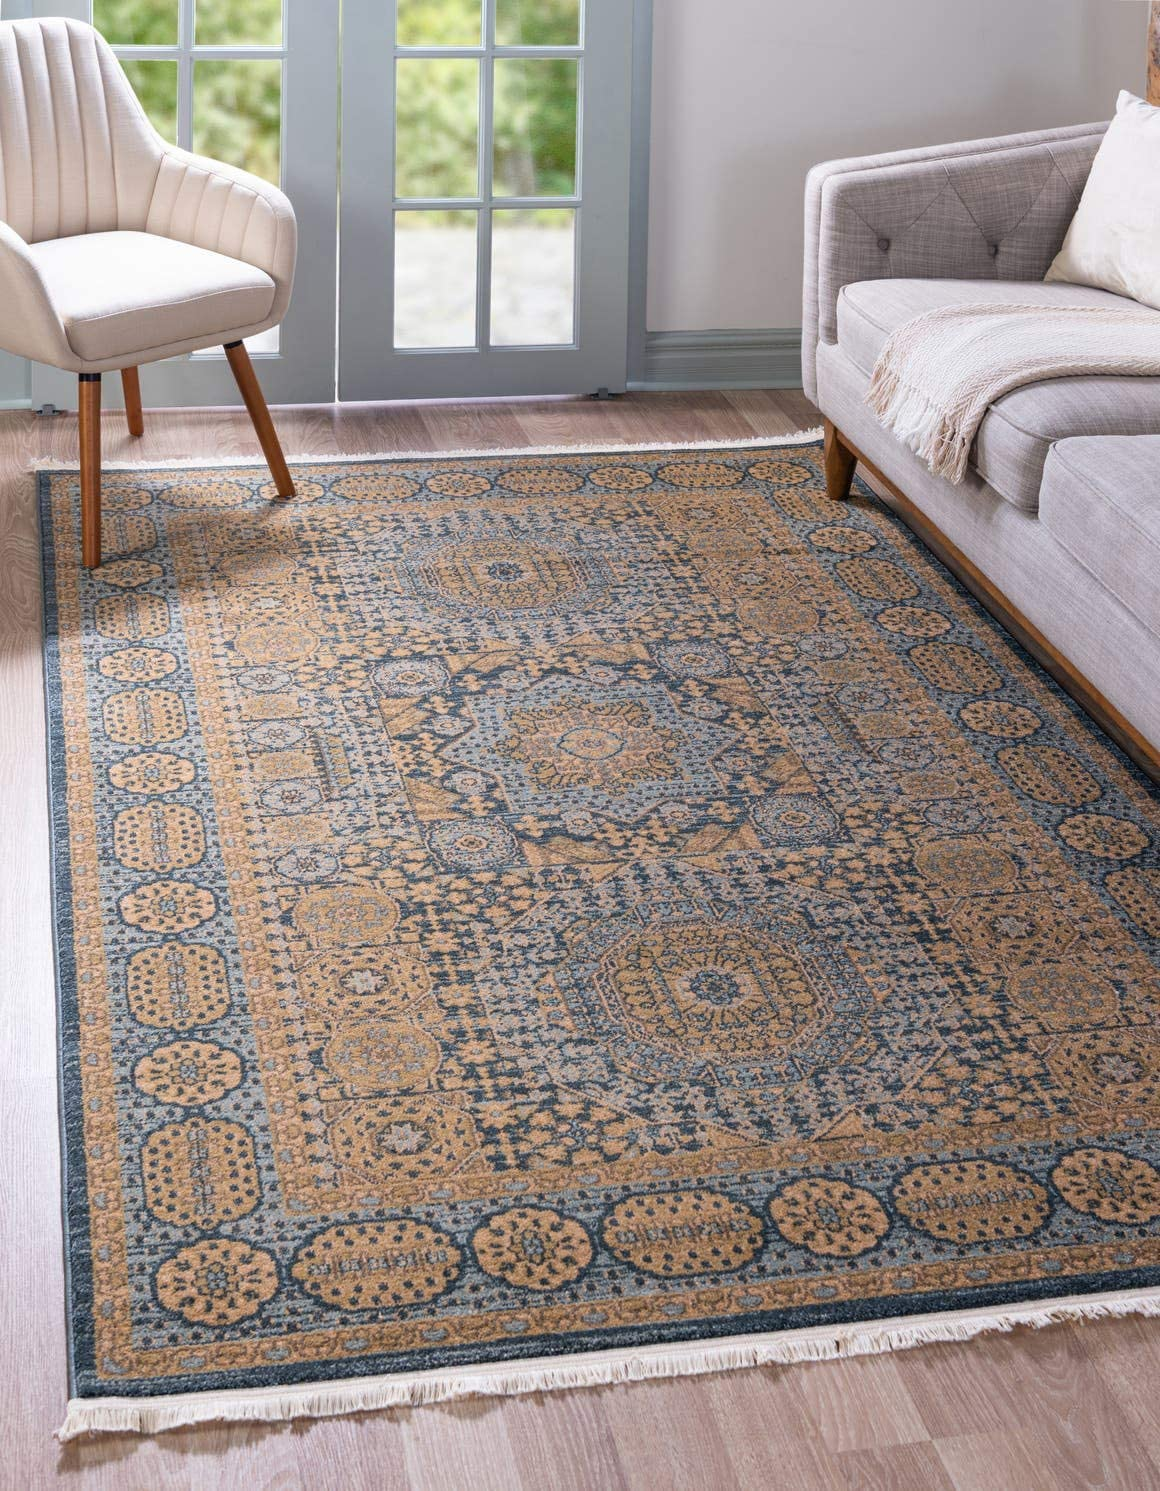 Unique Loom Palace Collection Traditoinal Geometric Classic Blue Area Rug 2 0 x 3 0